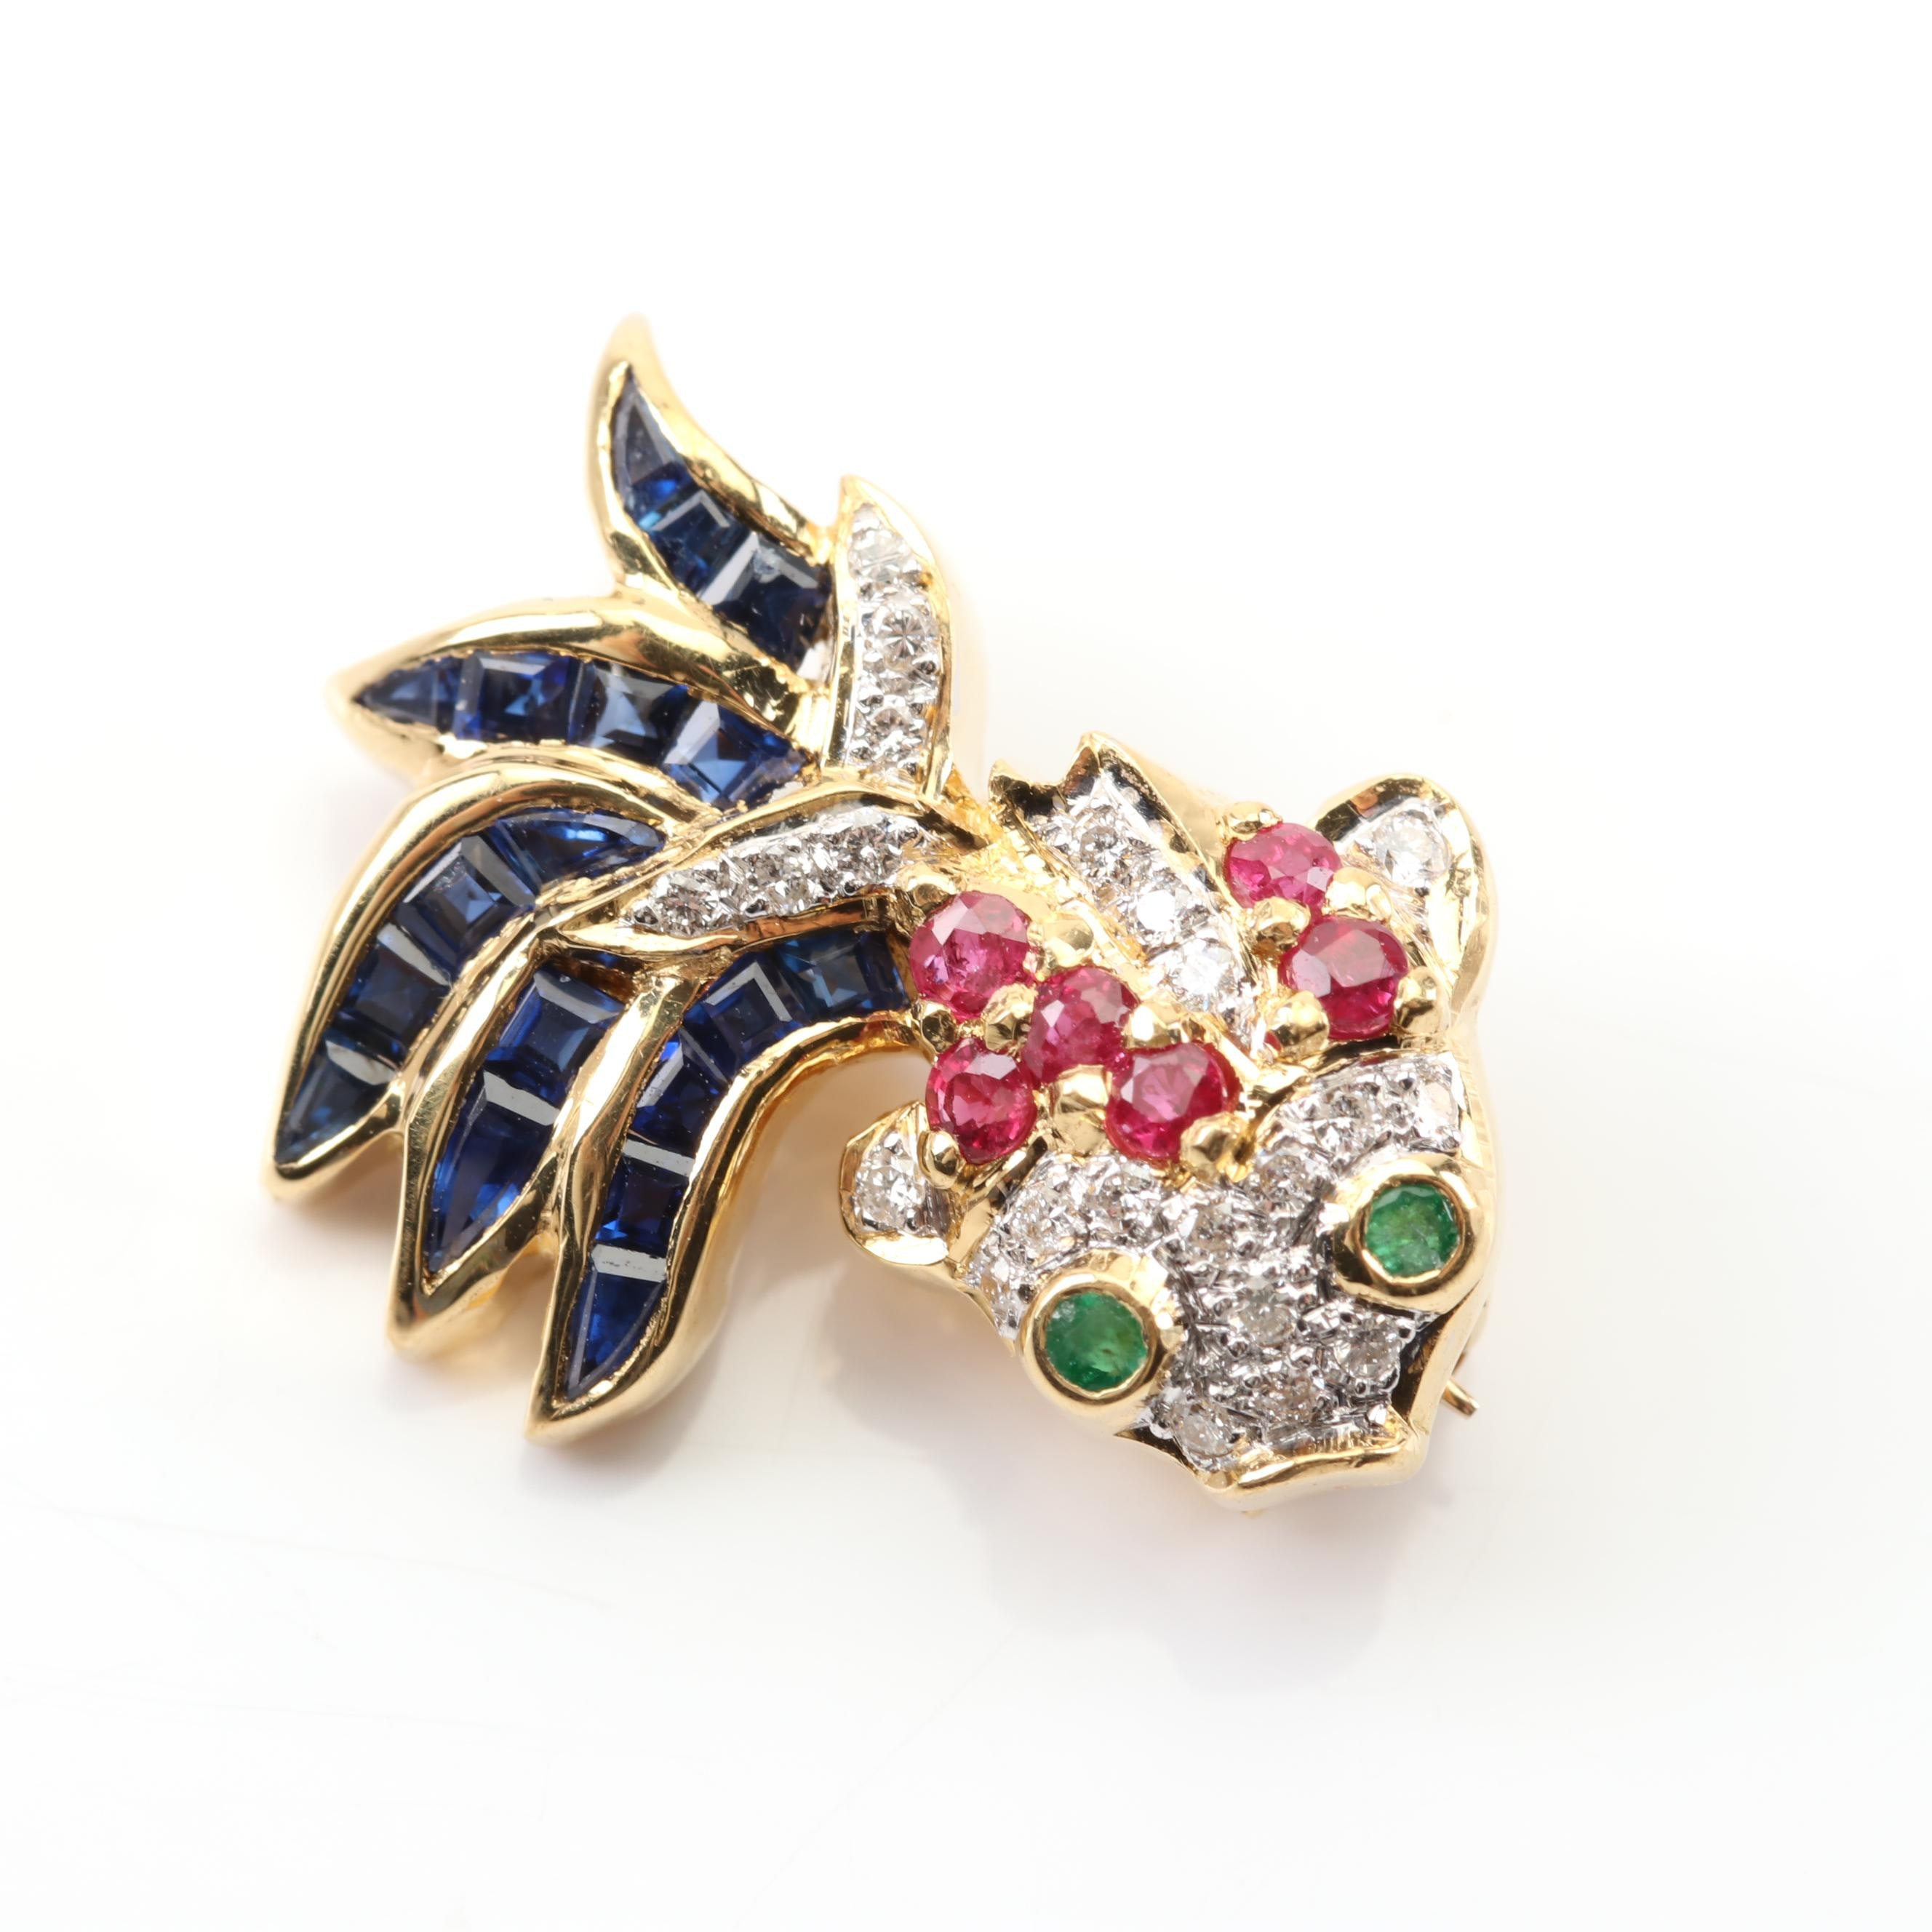 18K Yellow Gold Diamond, Sapphire, Ruby and Emerald Fish Brooch